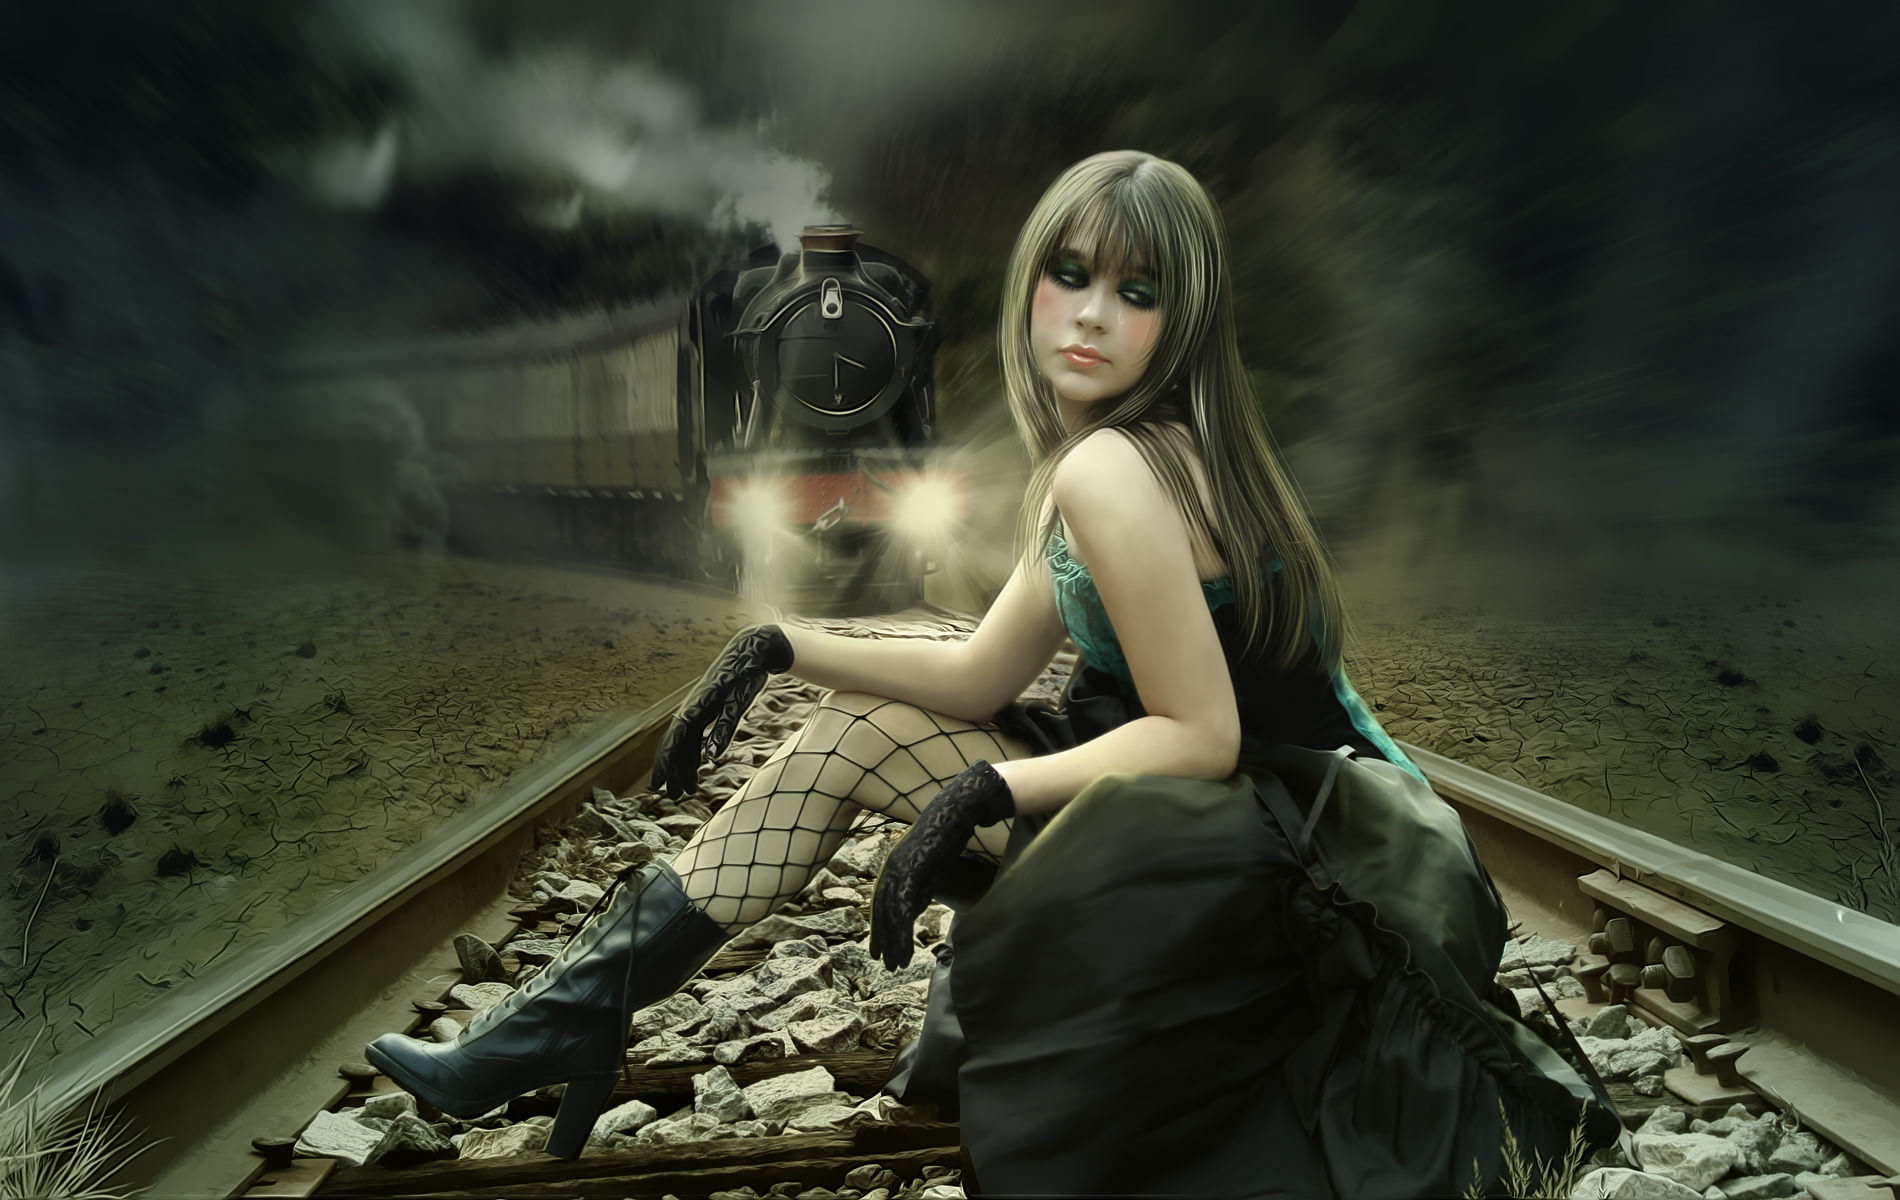 Train Suicide Emo Wallpaper